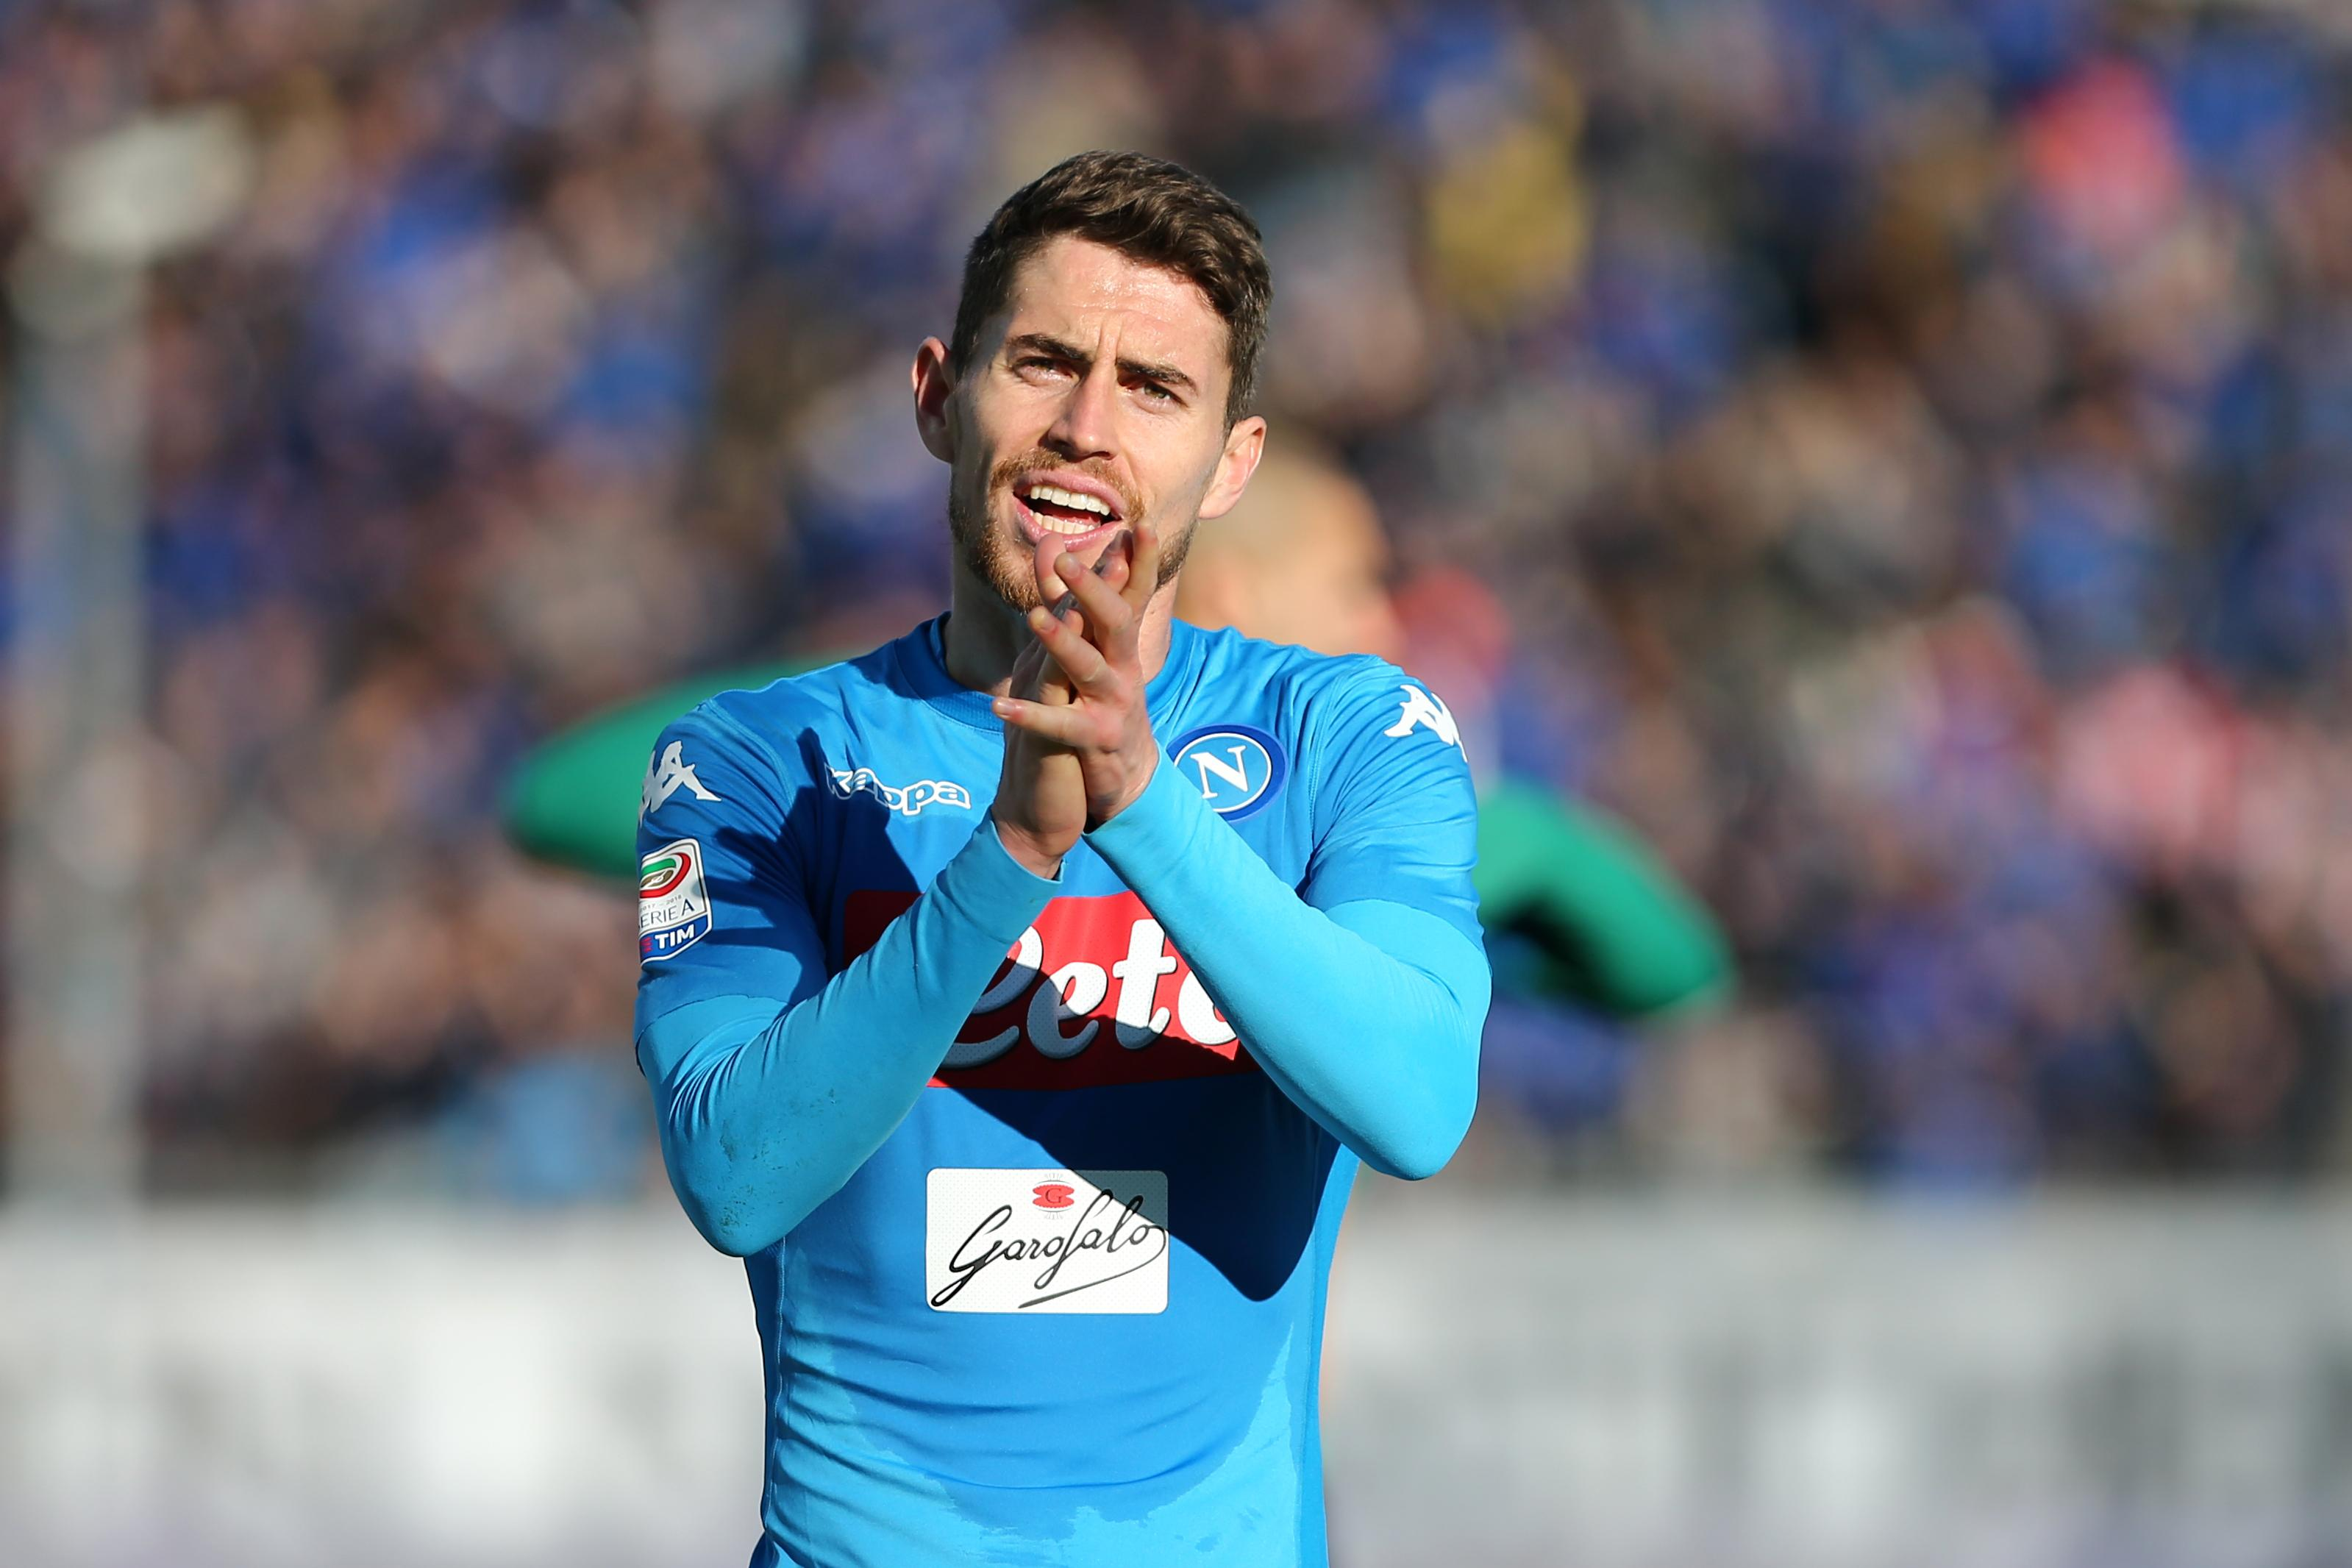 The centre of Napoli's excellence this season